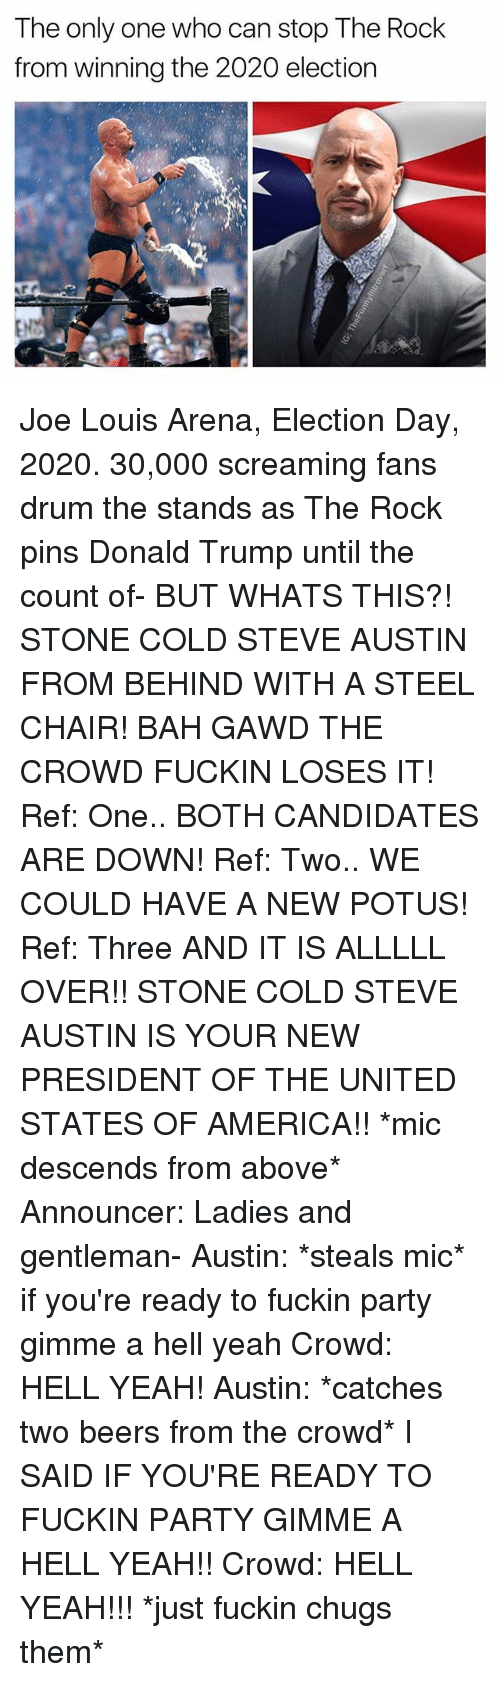 Gentlemane: The only one who can stop The Rock  from winning the 2020 election Joe Louis Arena, Election Day, 2020. 30,000 screaming fans drum the stands as The Rock pins Donald Trump until the count of- BUT WHATS THIS?! STONE COLD STEVE AUSTIN FROM BEHIND WITH A STEEL CHAIR! BAH GAWD THE CROWD FUCKIN LOSES IT! Ref: One.. BOTH CANDIDATES ARE DOWN! Ref: Two.. WE COULD HAVE A NEW POTUS! Ref: Three AND IT IS ALLLLL OVER!! STONE COLD STEVE AUSTIN IS YOUR NEW PRESIDENT OF THE UNITED STATES OF AMERICA!! *mic descends from above* Announcer: Ladies and gentleman- Austin: *steals mic* if you're ready to fuckin party gimme a hell yeah Crowd: HELL YEAH! Austin: *catches two beers from the crowd* I SAID IF YOU'RE READY TO FUCKIN PARTY GIMME A HELL YEAH!! Crowd: HELL YEAH!!! *just fuckin chugs them*